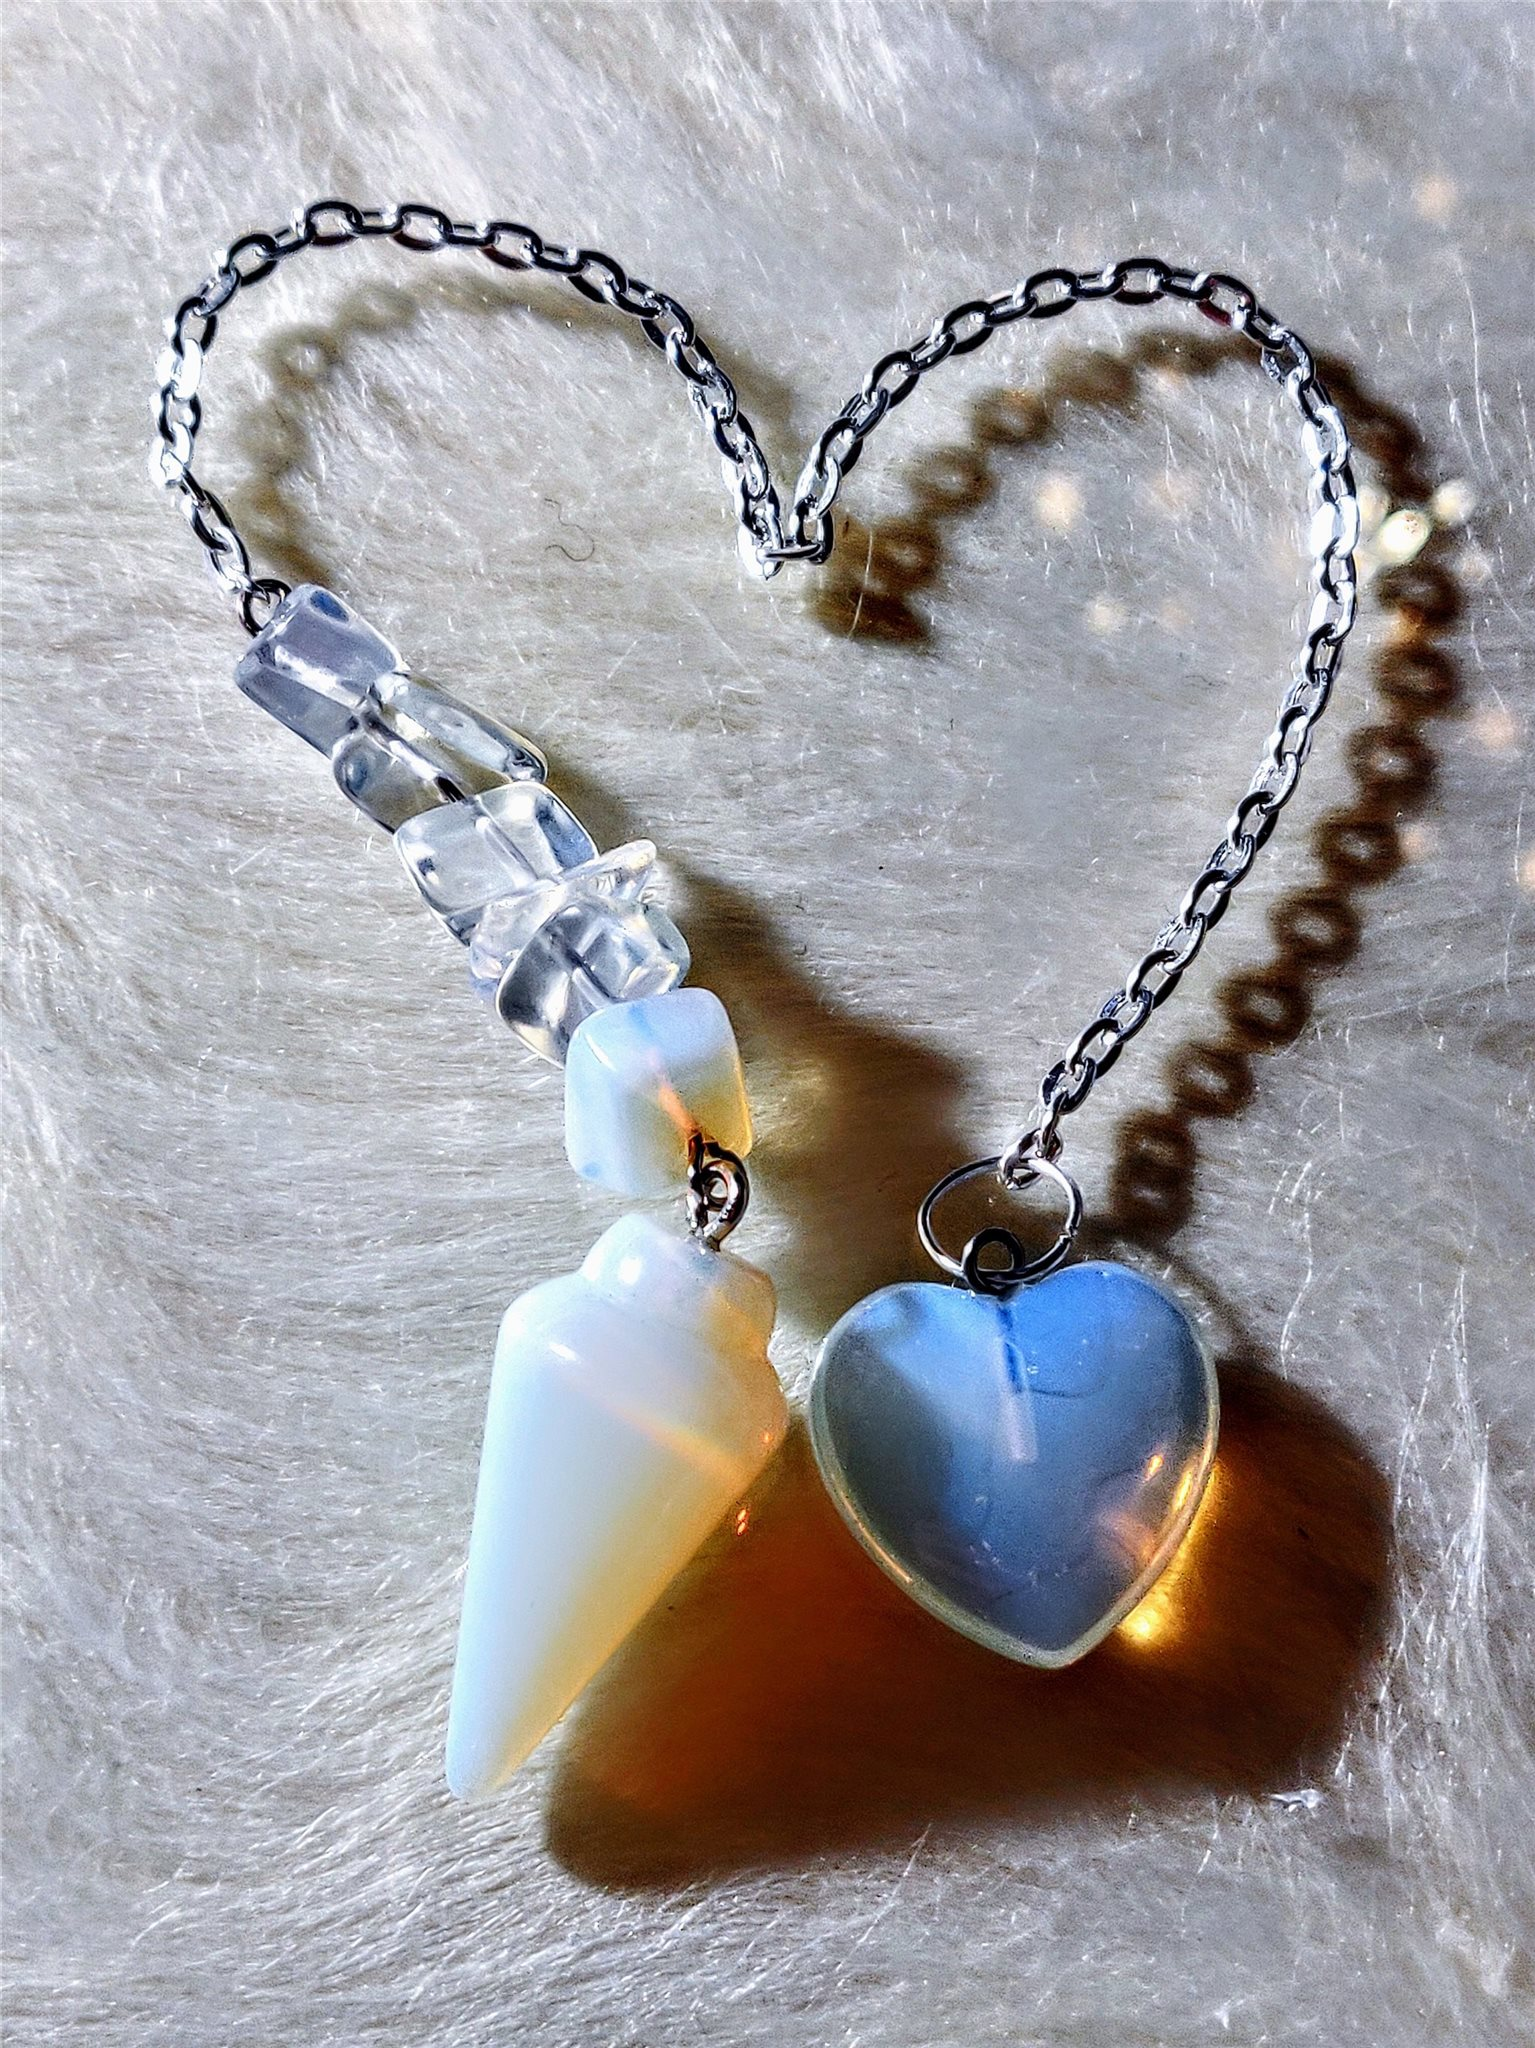 29 mm Opalite with Opalite chips and heart